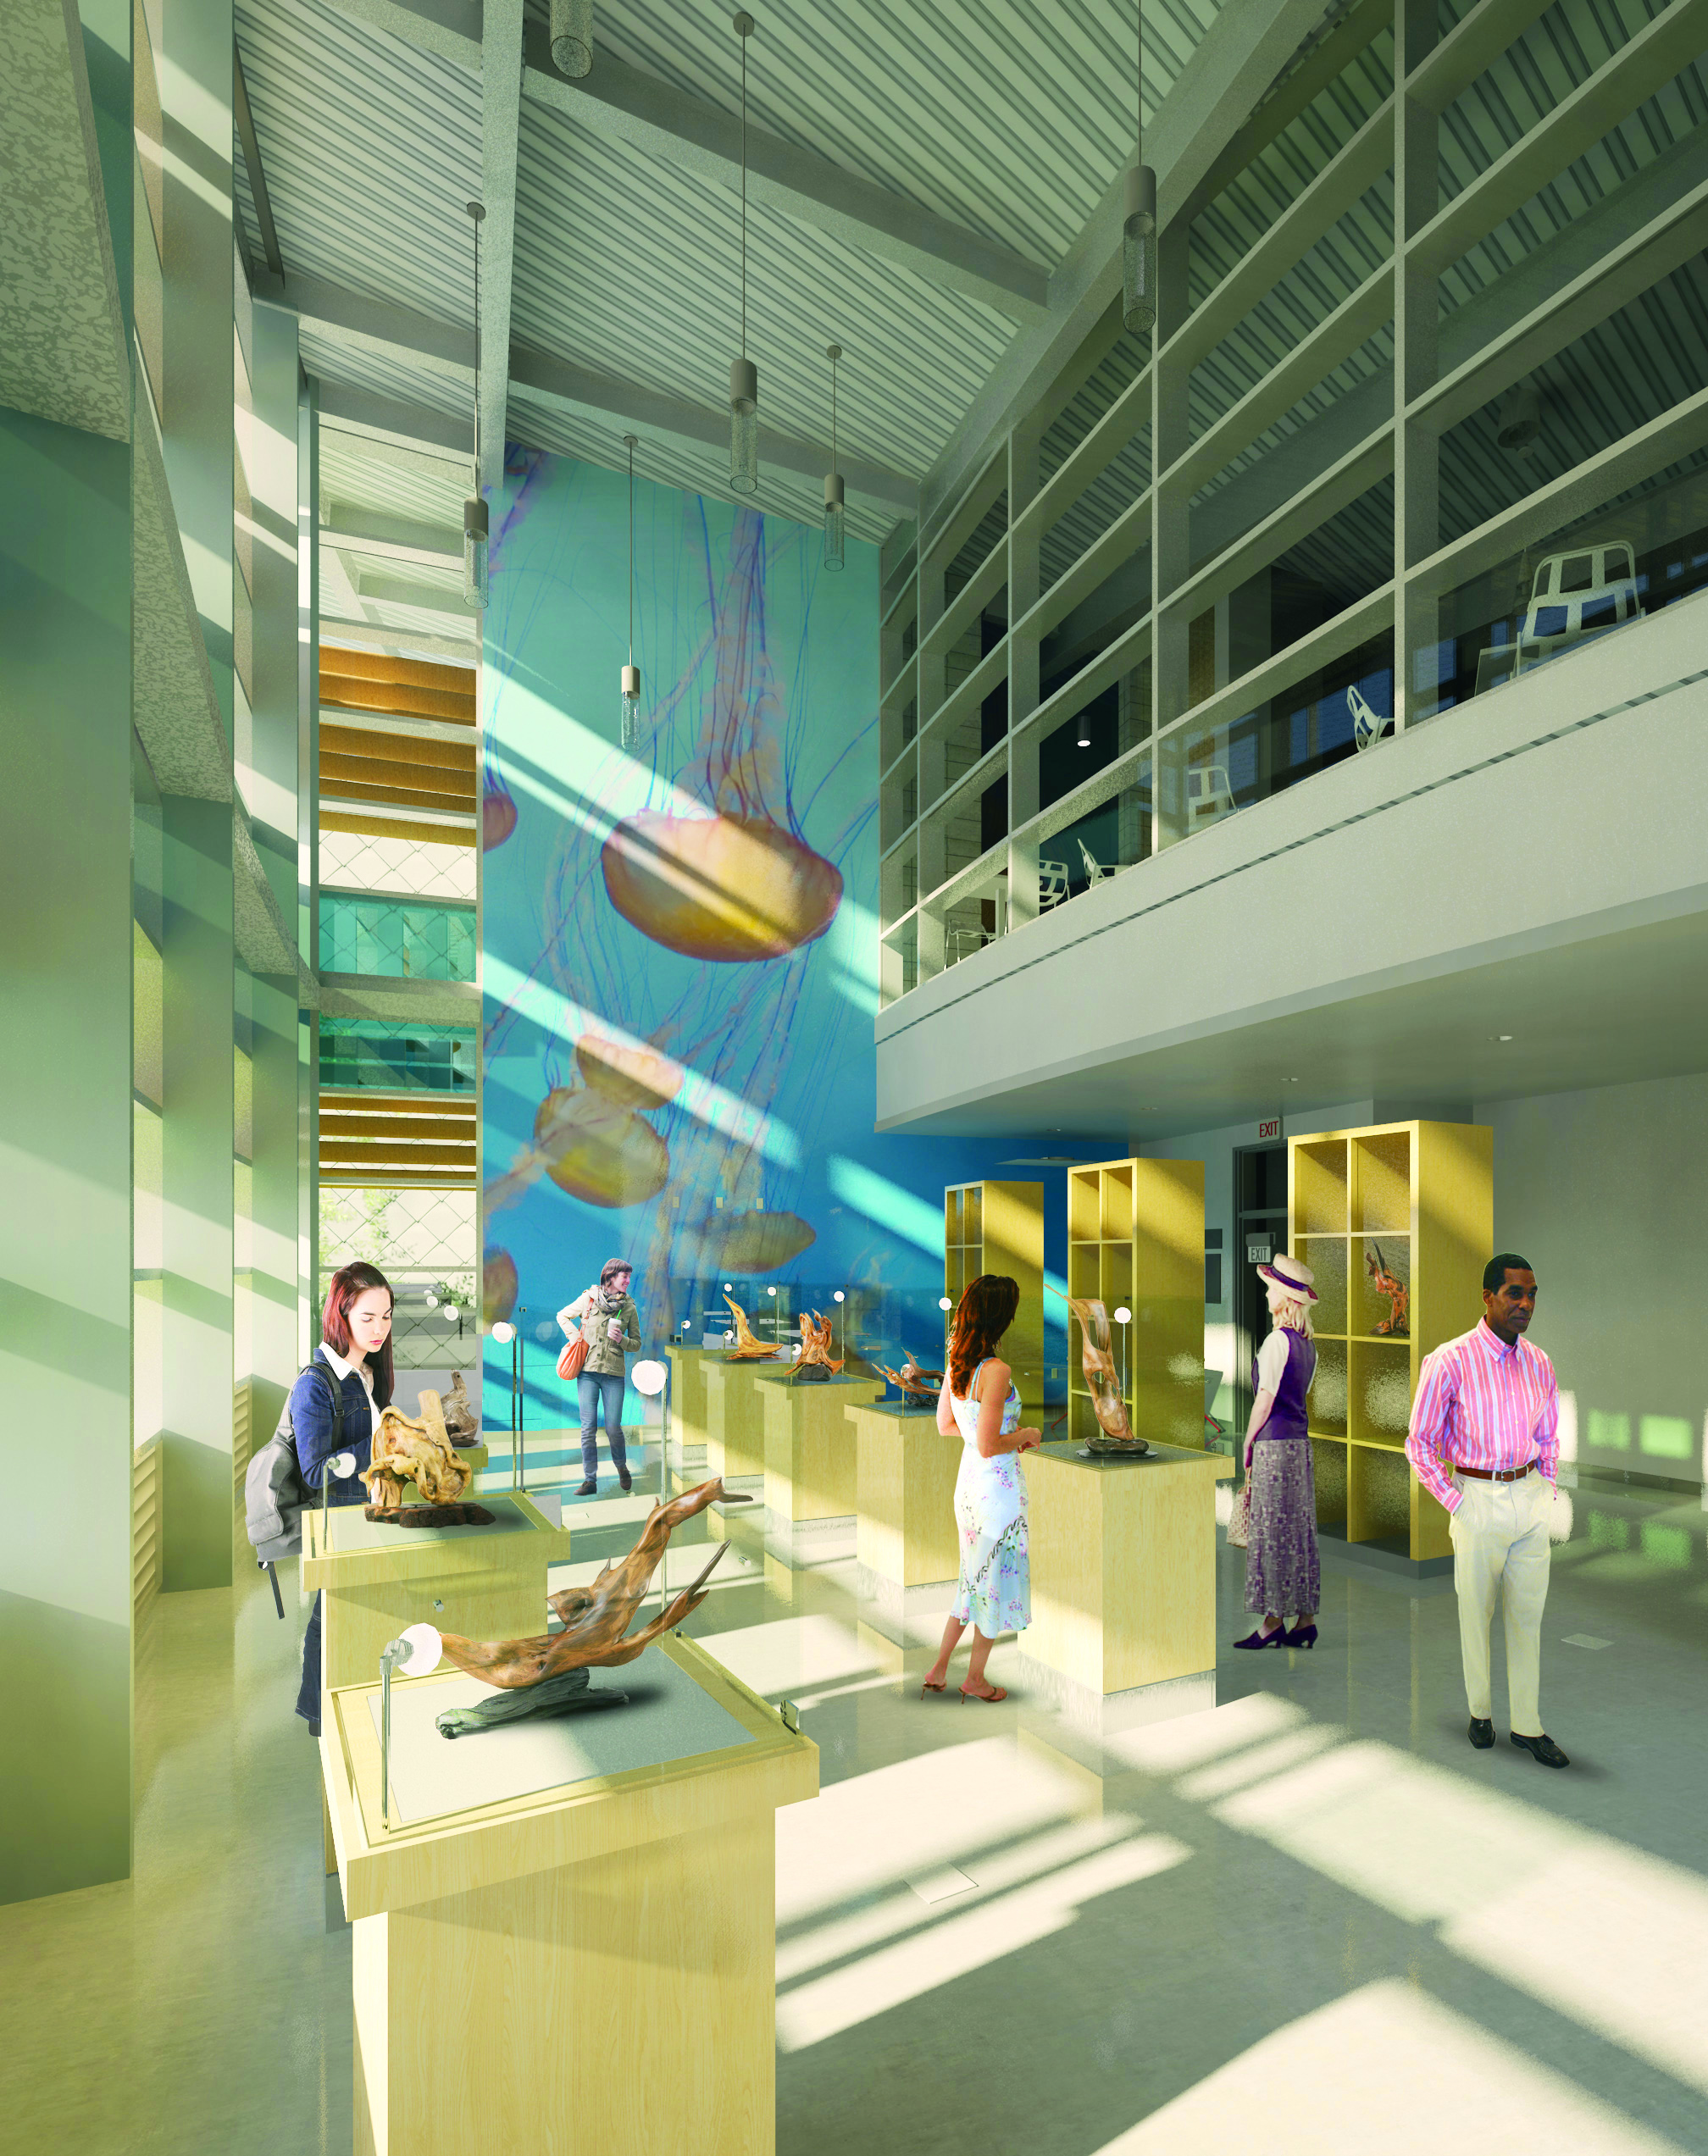 The state-of-the-art facility will comprise classrooms, a computer lab and a music/lecture hall.